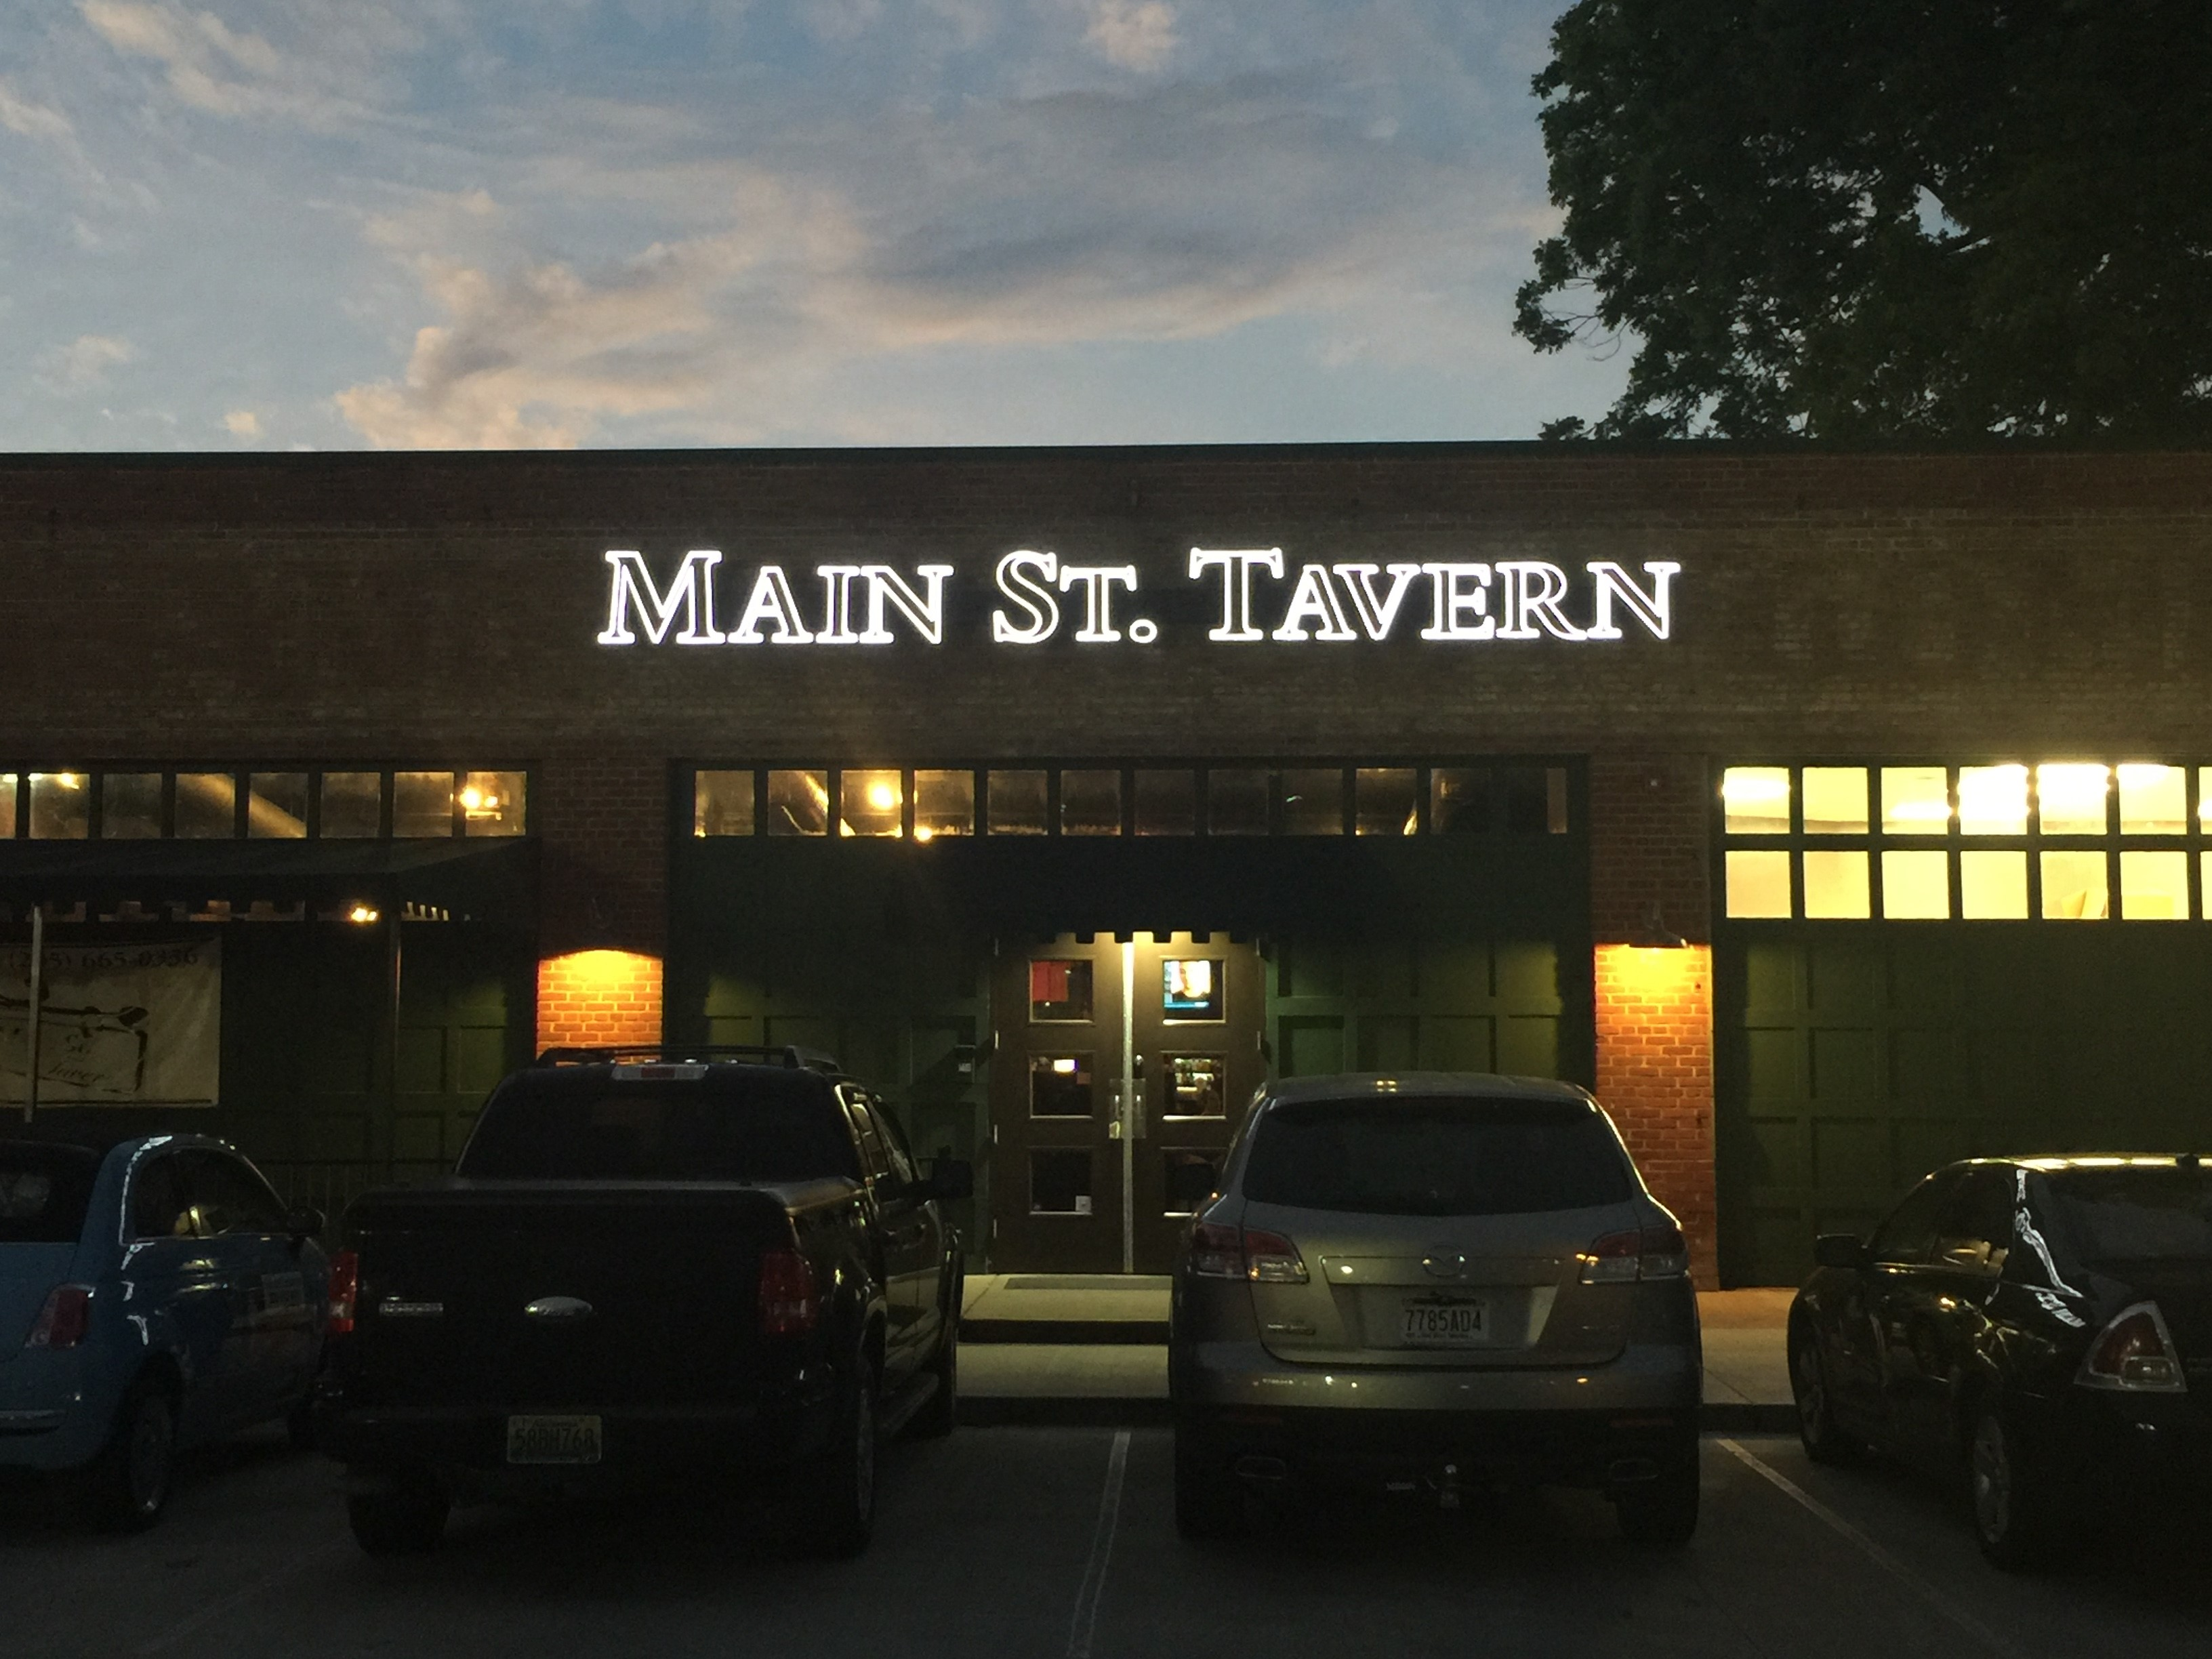 Main St. Tavern